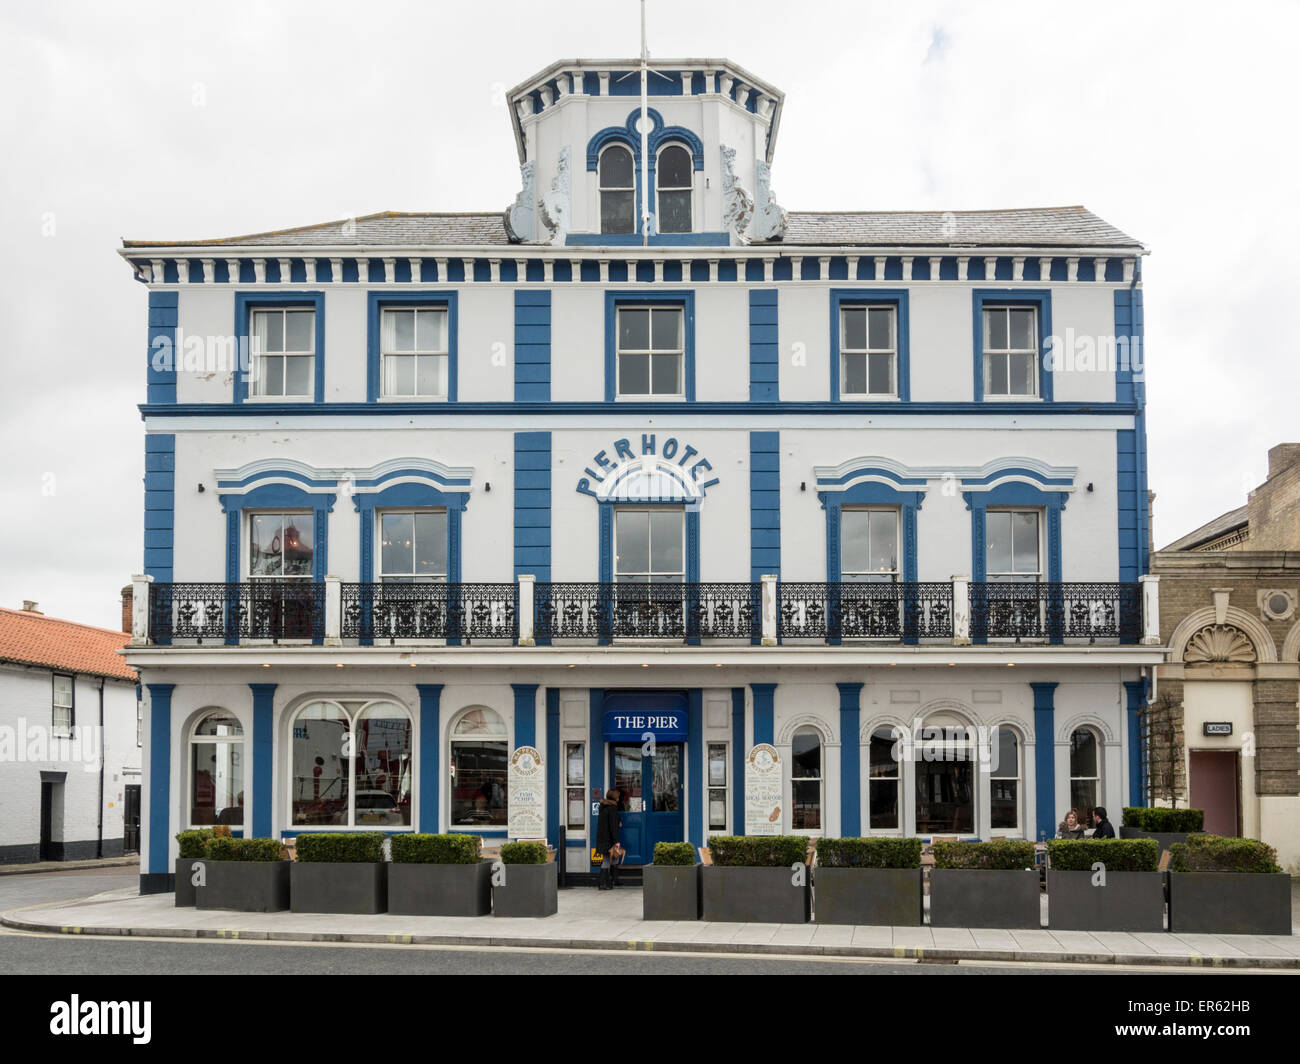 Pier hotel and restaurant in Harwich Essex - Stock Image